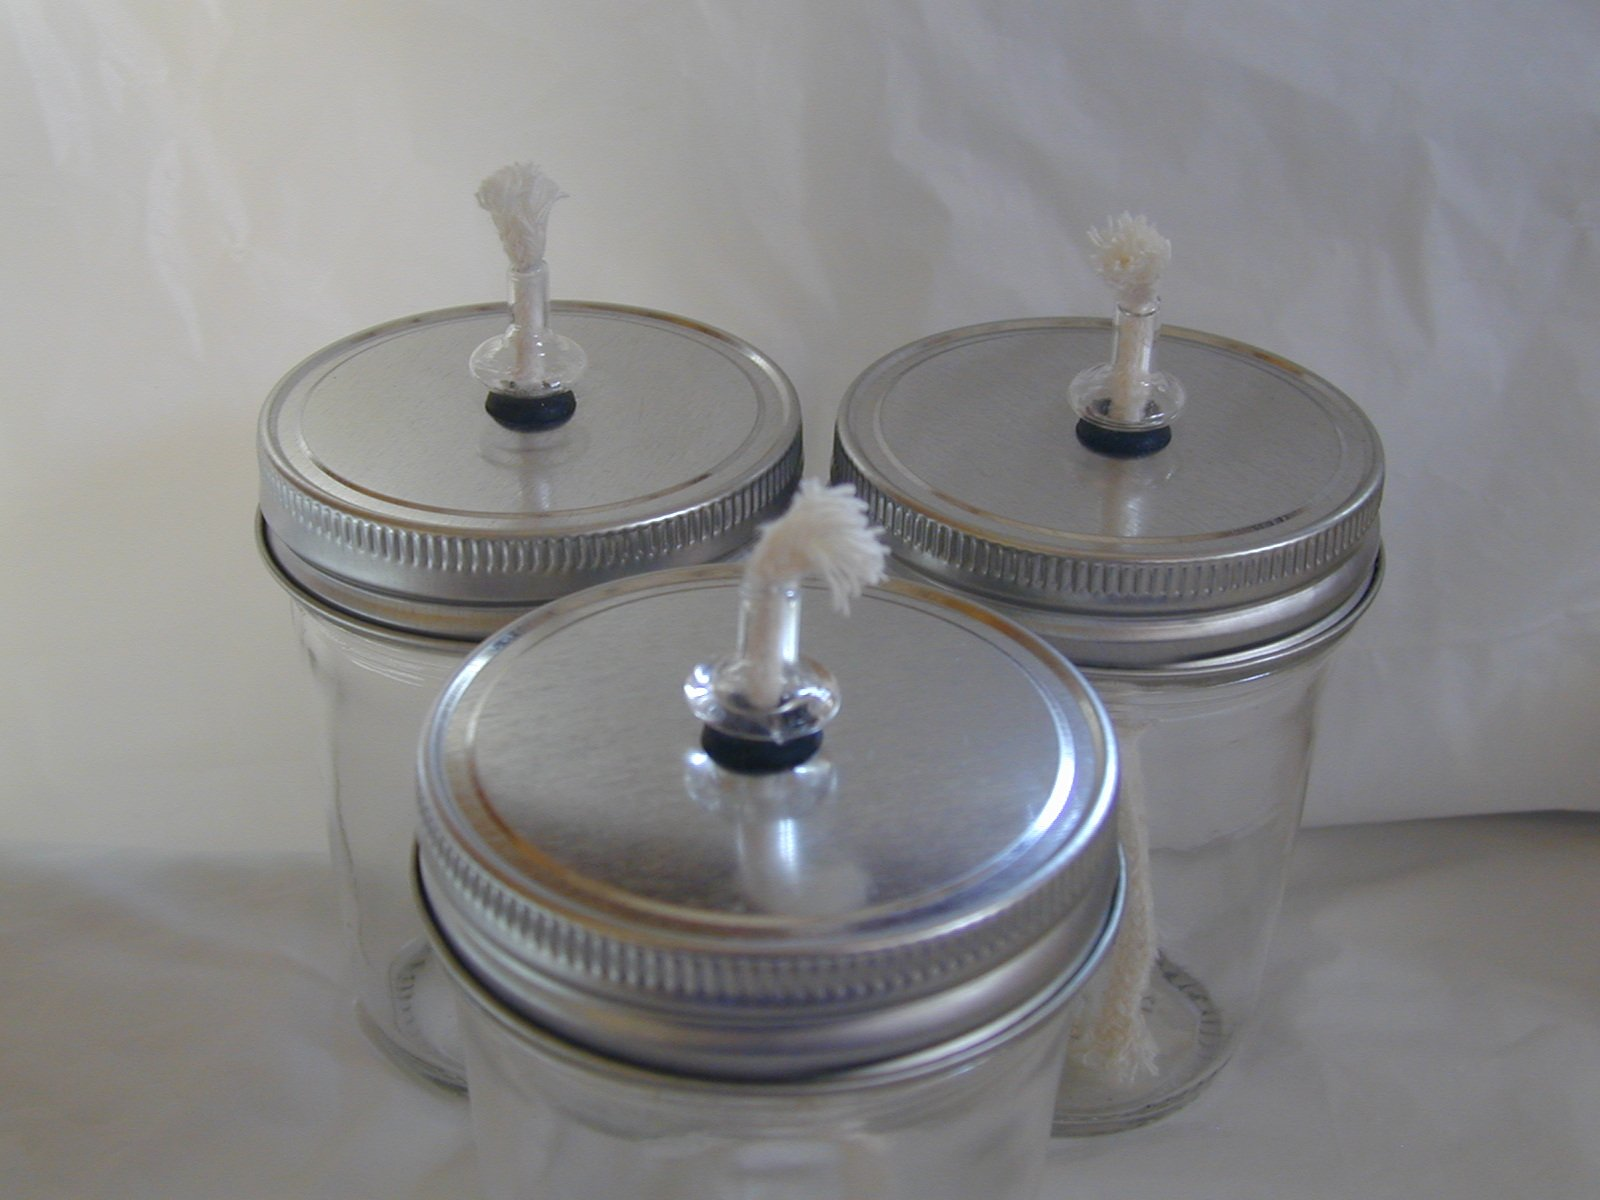 Mason/Kerr/Ball Canning Jar Oil Lamp or Burner Converter - Silver Triple Pack by Simply Homemade (Image #1)